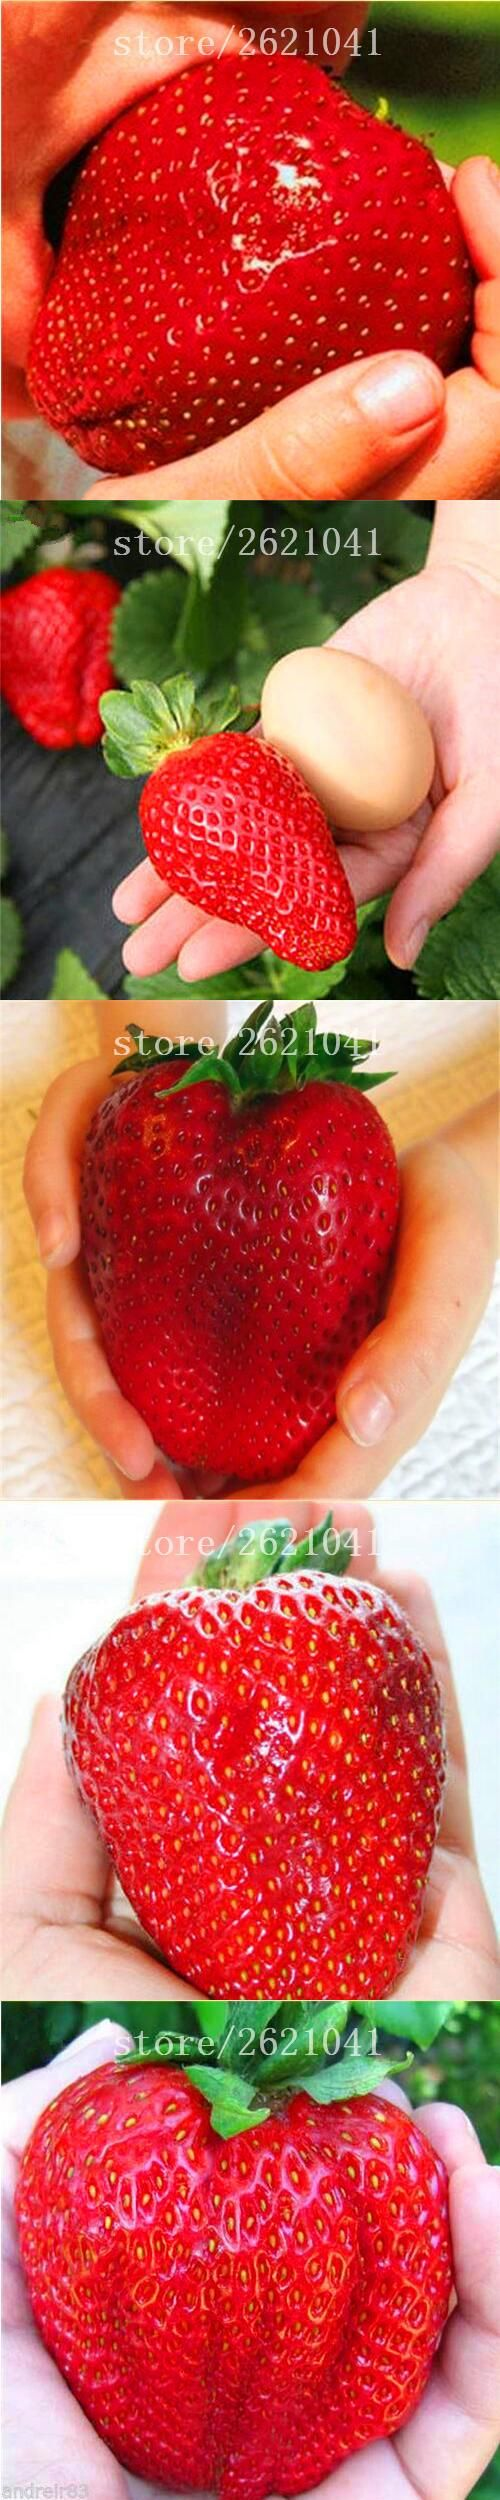 1000 PCS Big Giant Strawberry Seeds, Rare Sweet Four-season vegetable and fruit Seeds, Garden plants